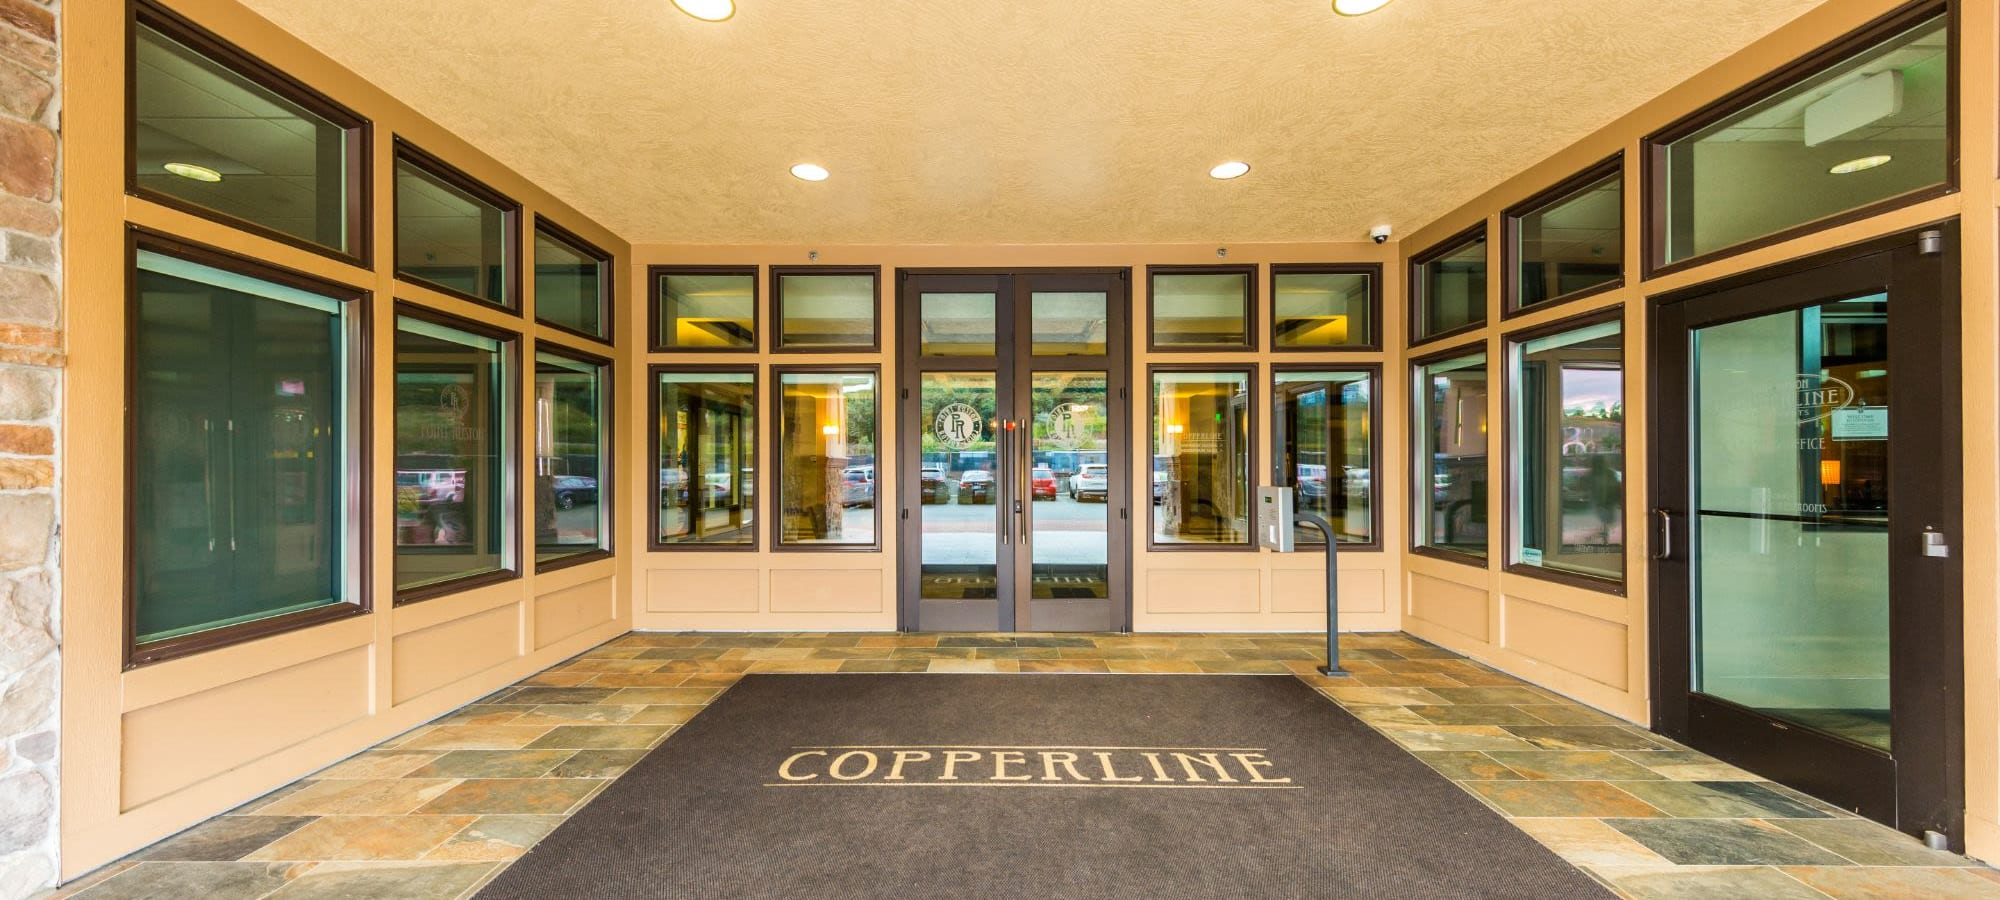 Resident information for Copperline at Point Ruston in Tacoma, Washington